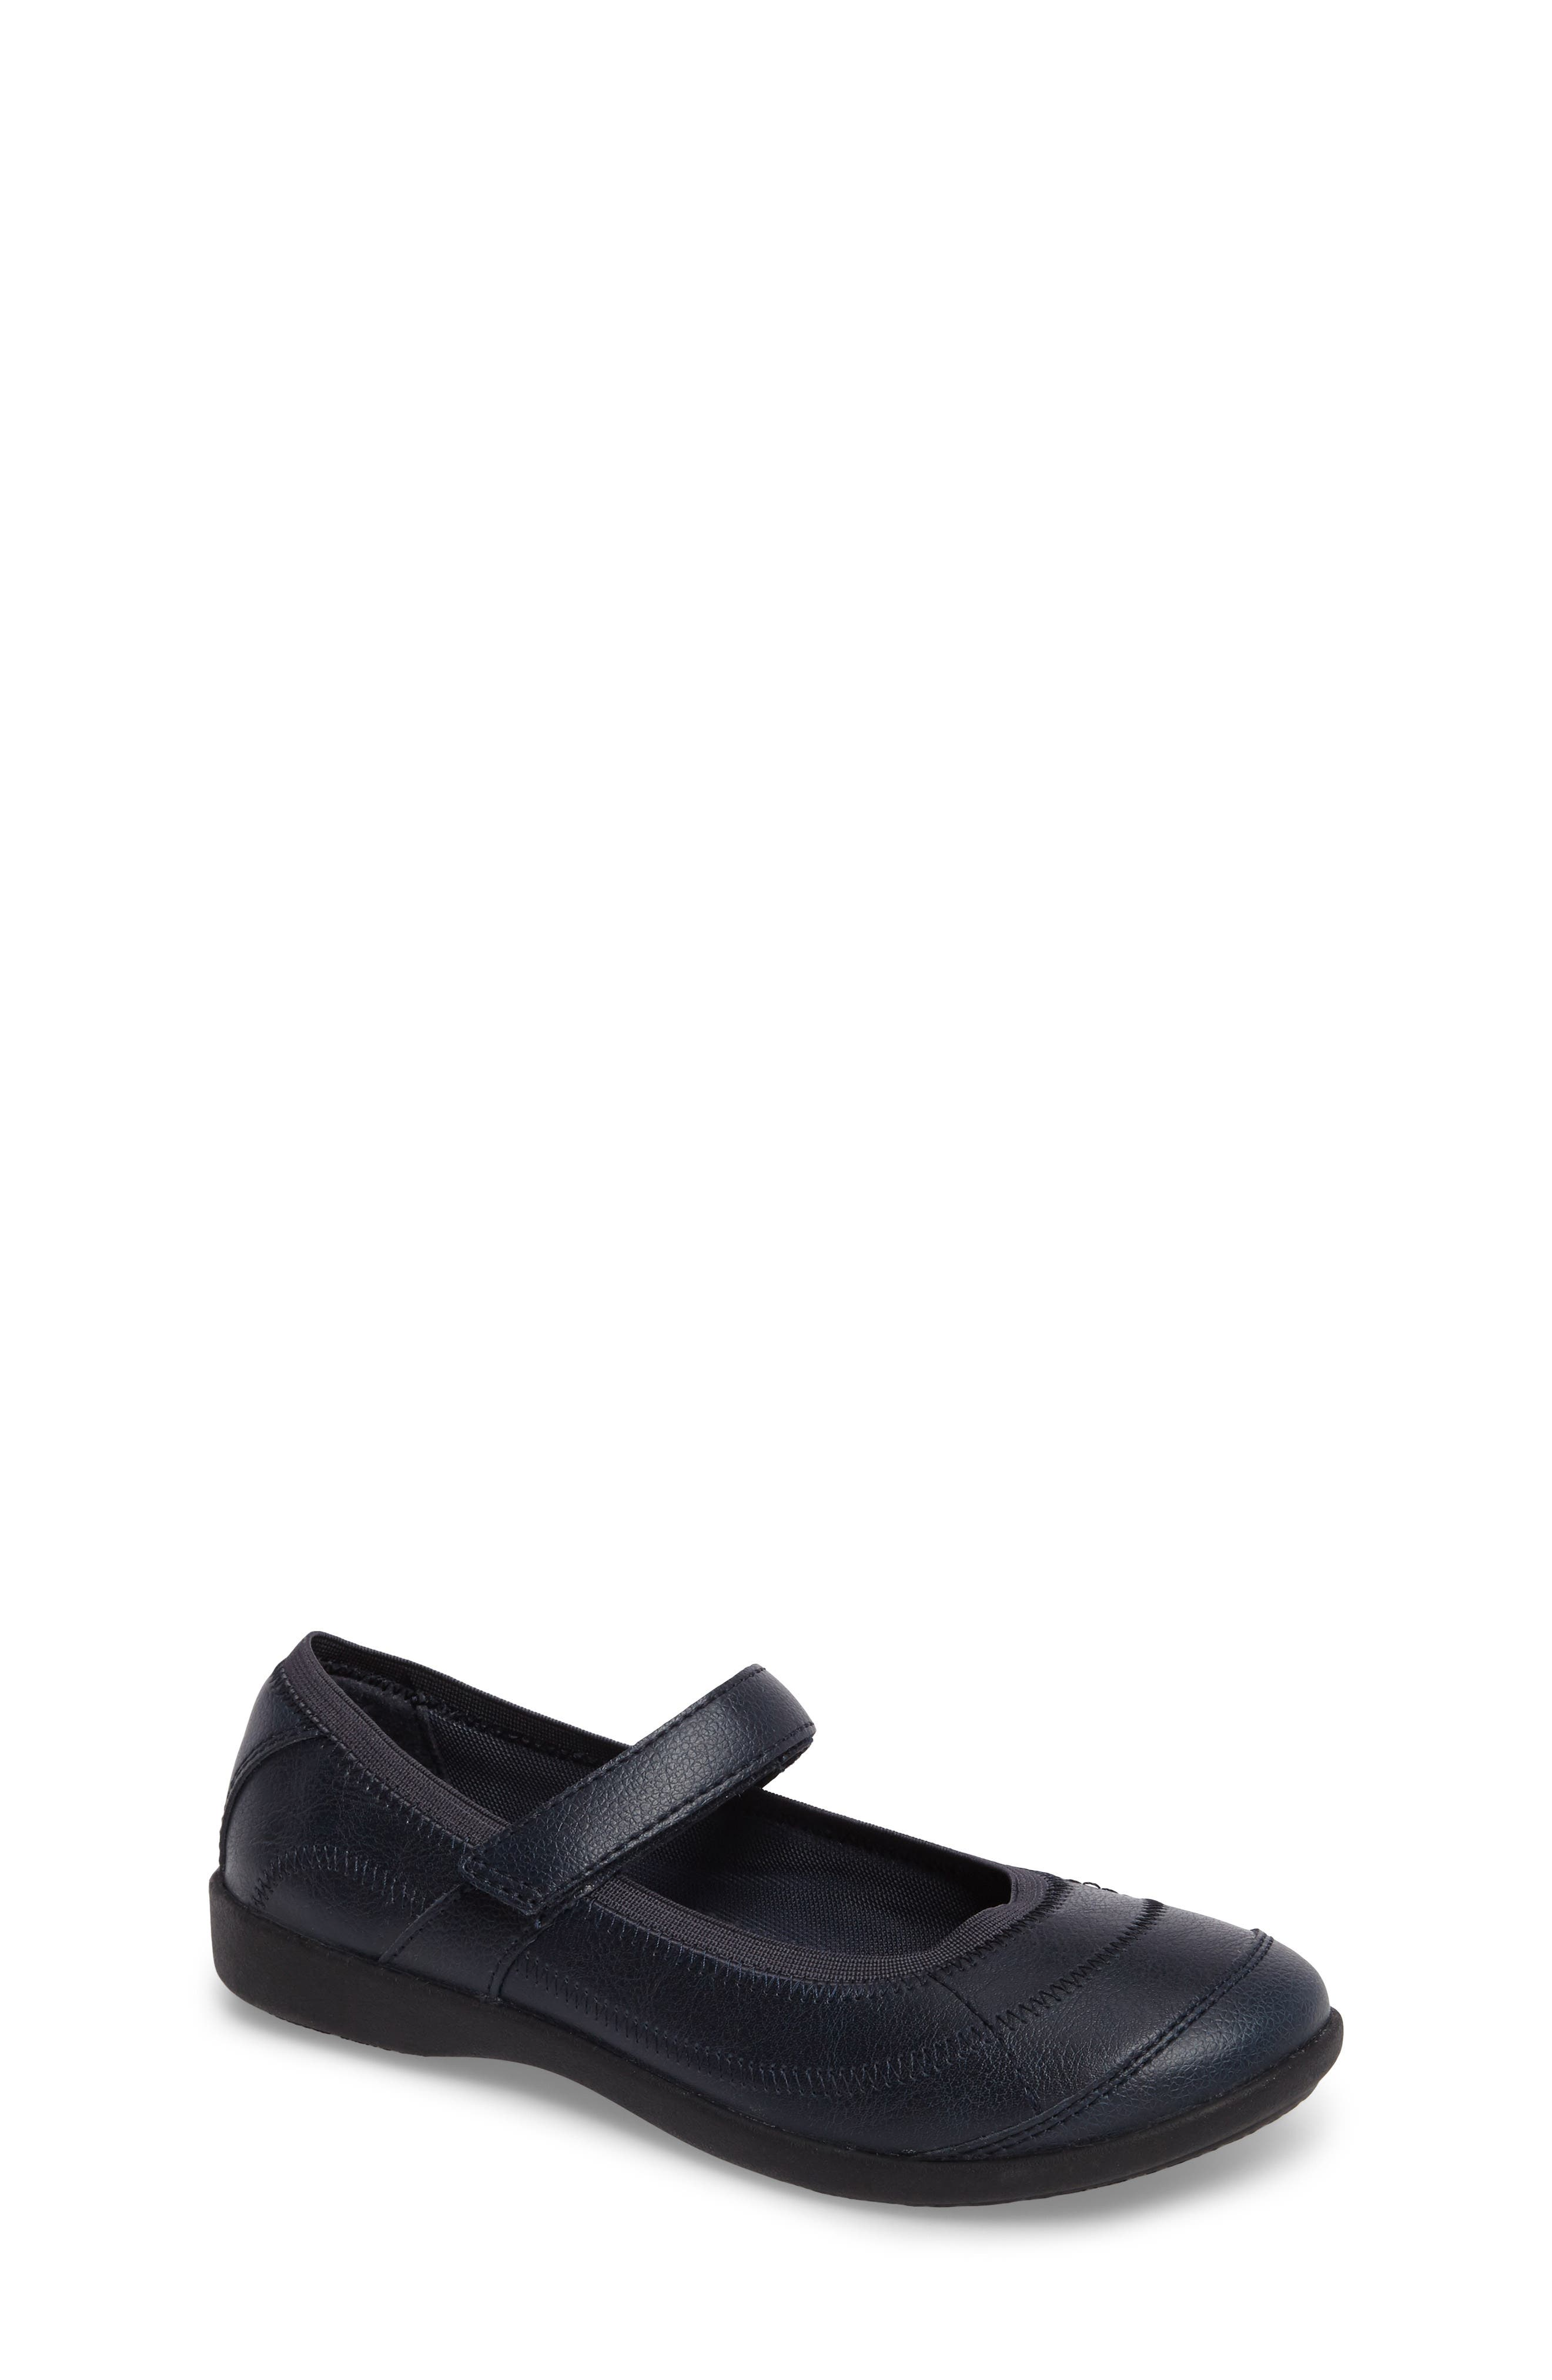 HUSH PUPPIES<SUP>®</SUP>, Reese Mary Jane Flat, Main thumbnail 1, color, NAVY LEATHER